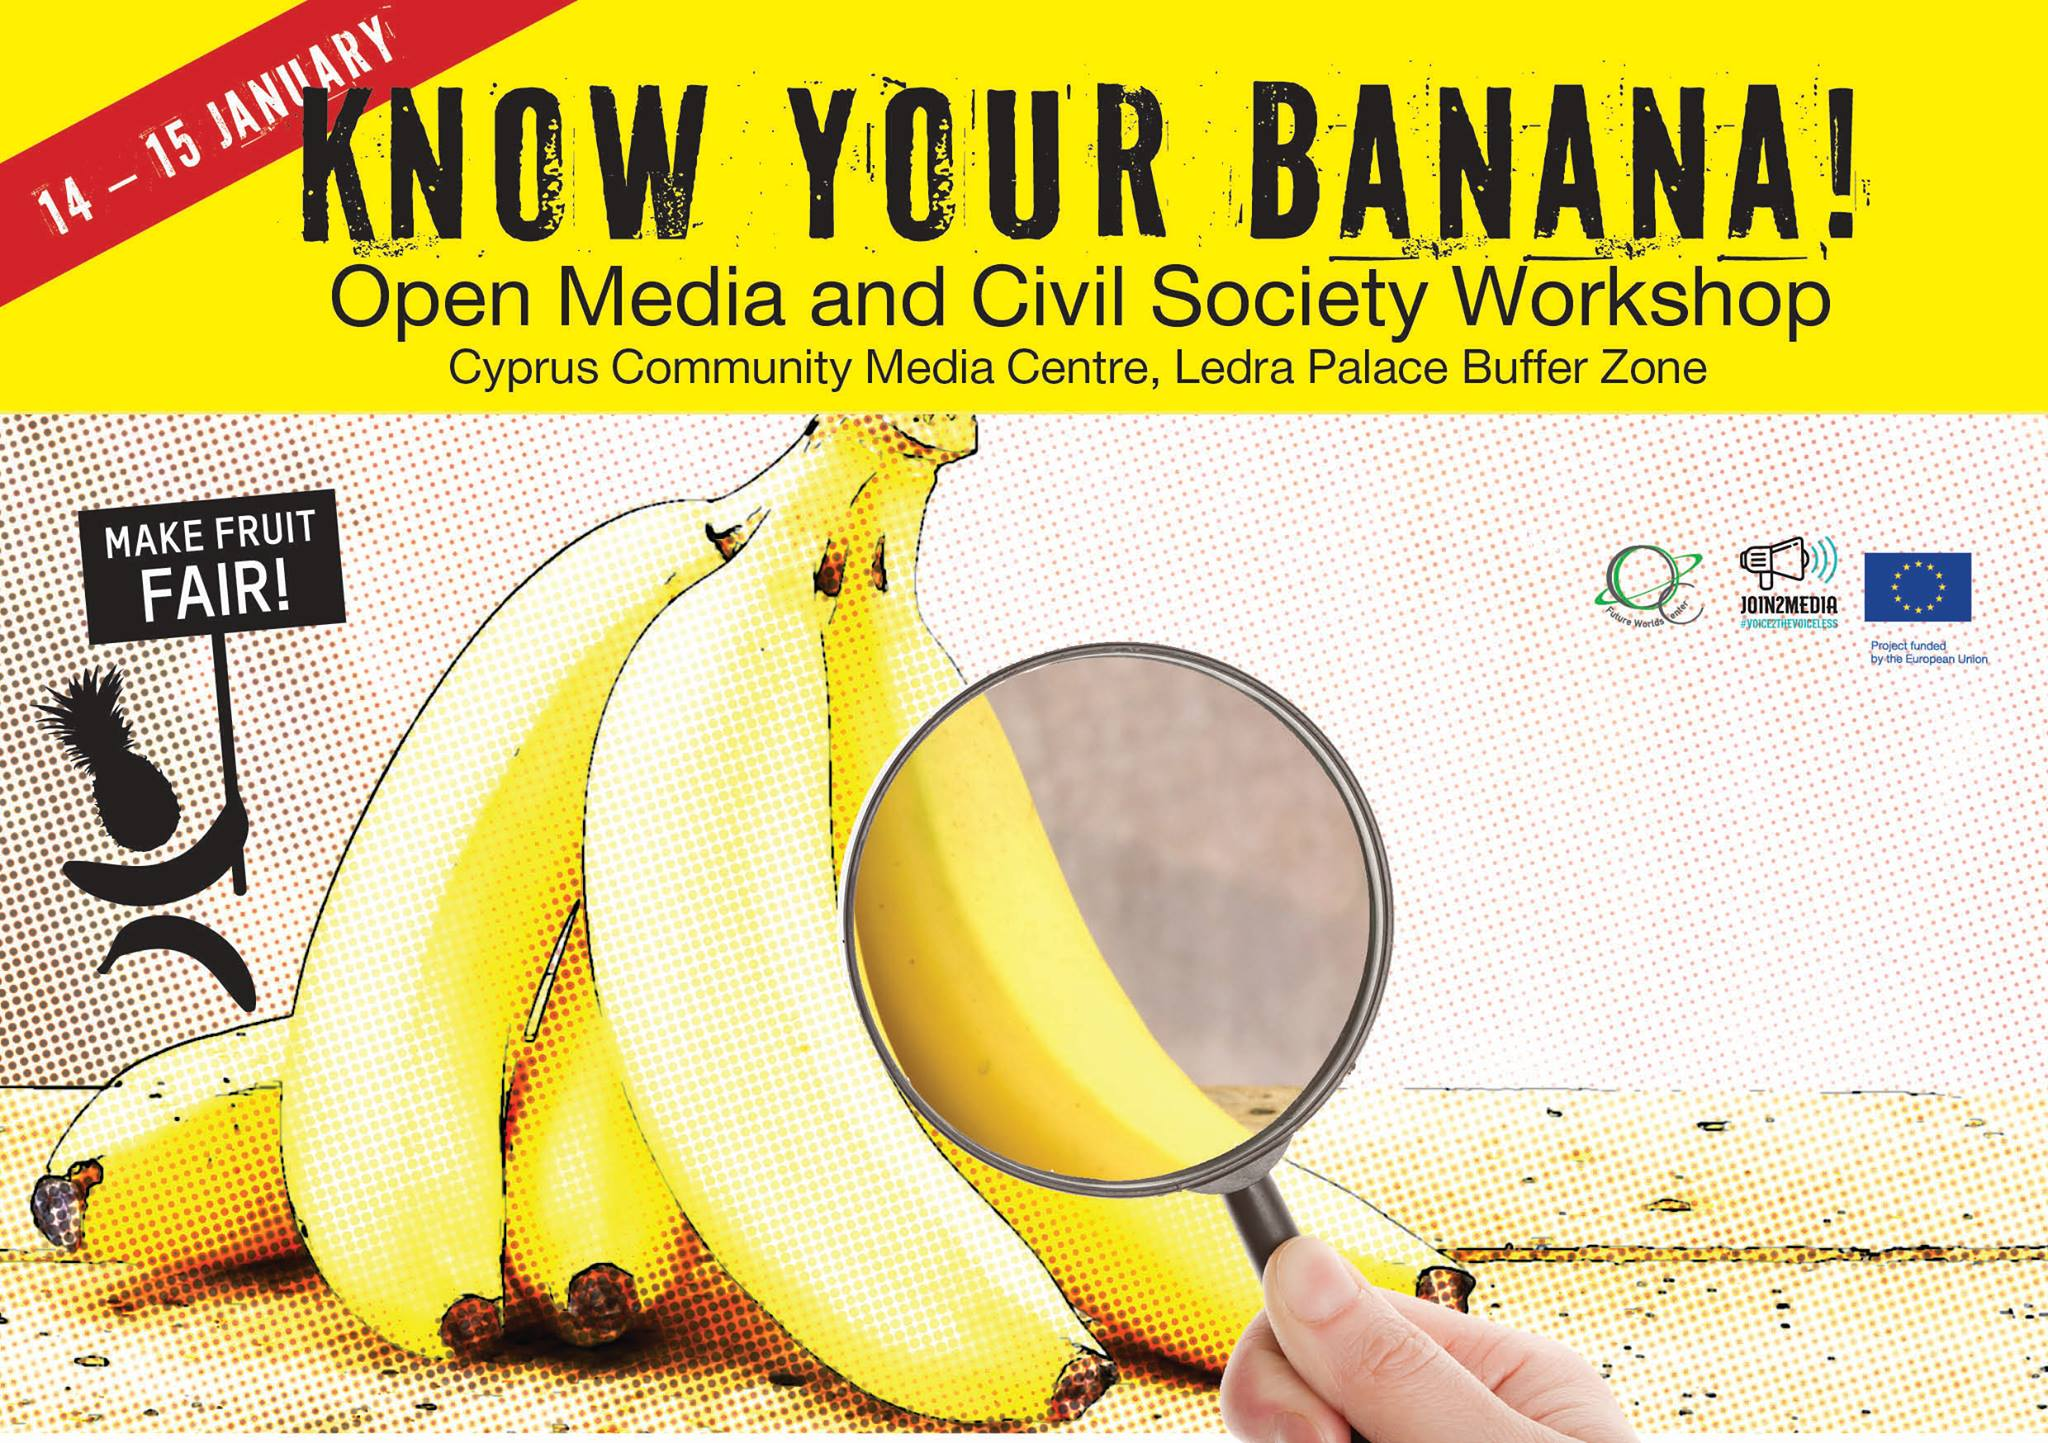 know-your-banana-open-media-and-civil-society-workshop-cyprusinno-cyprus